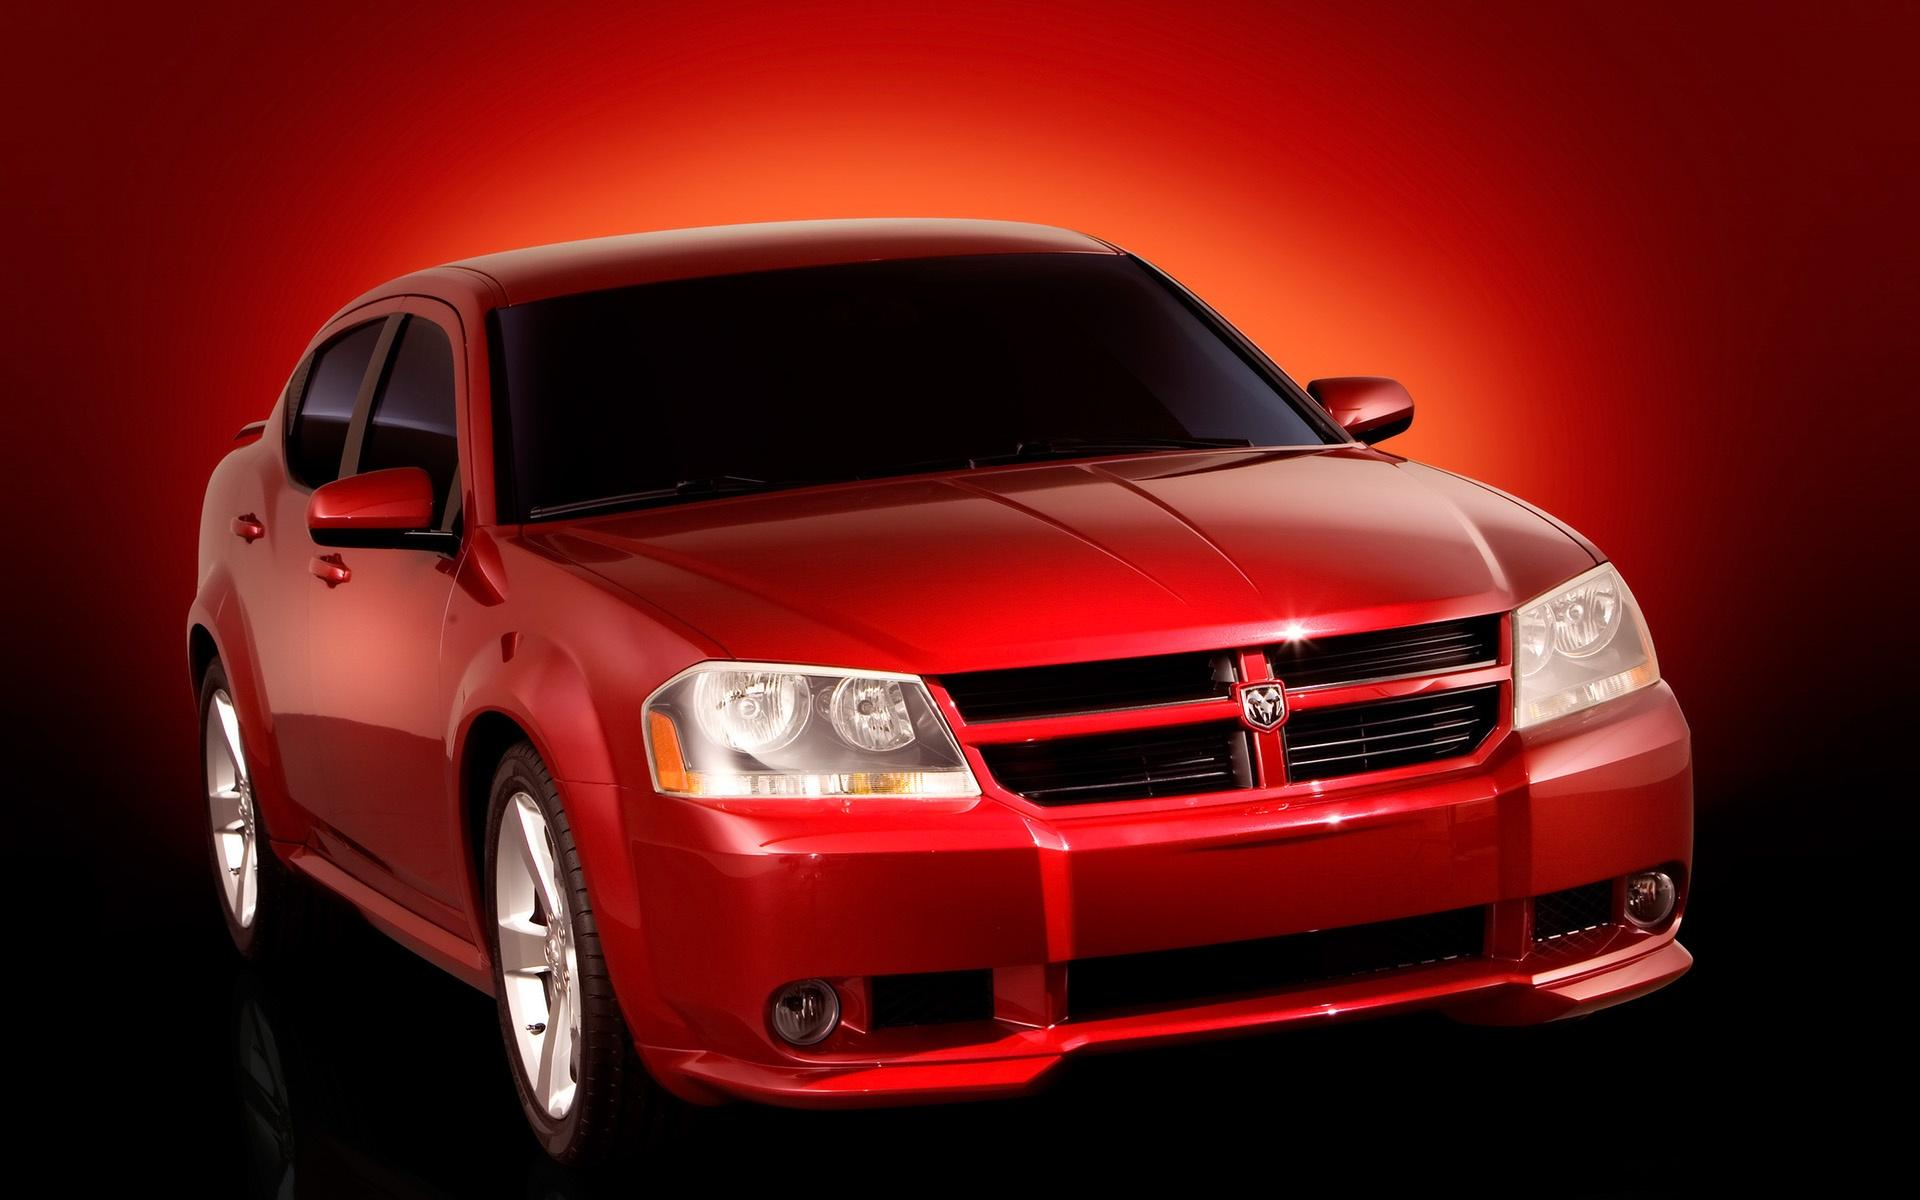 2006 Dodge Avenger Concept Front Angle 1920x1200